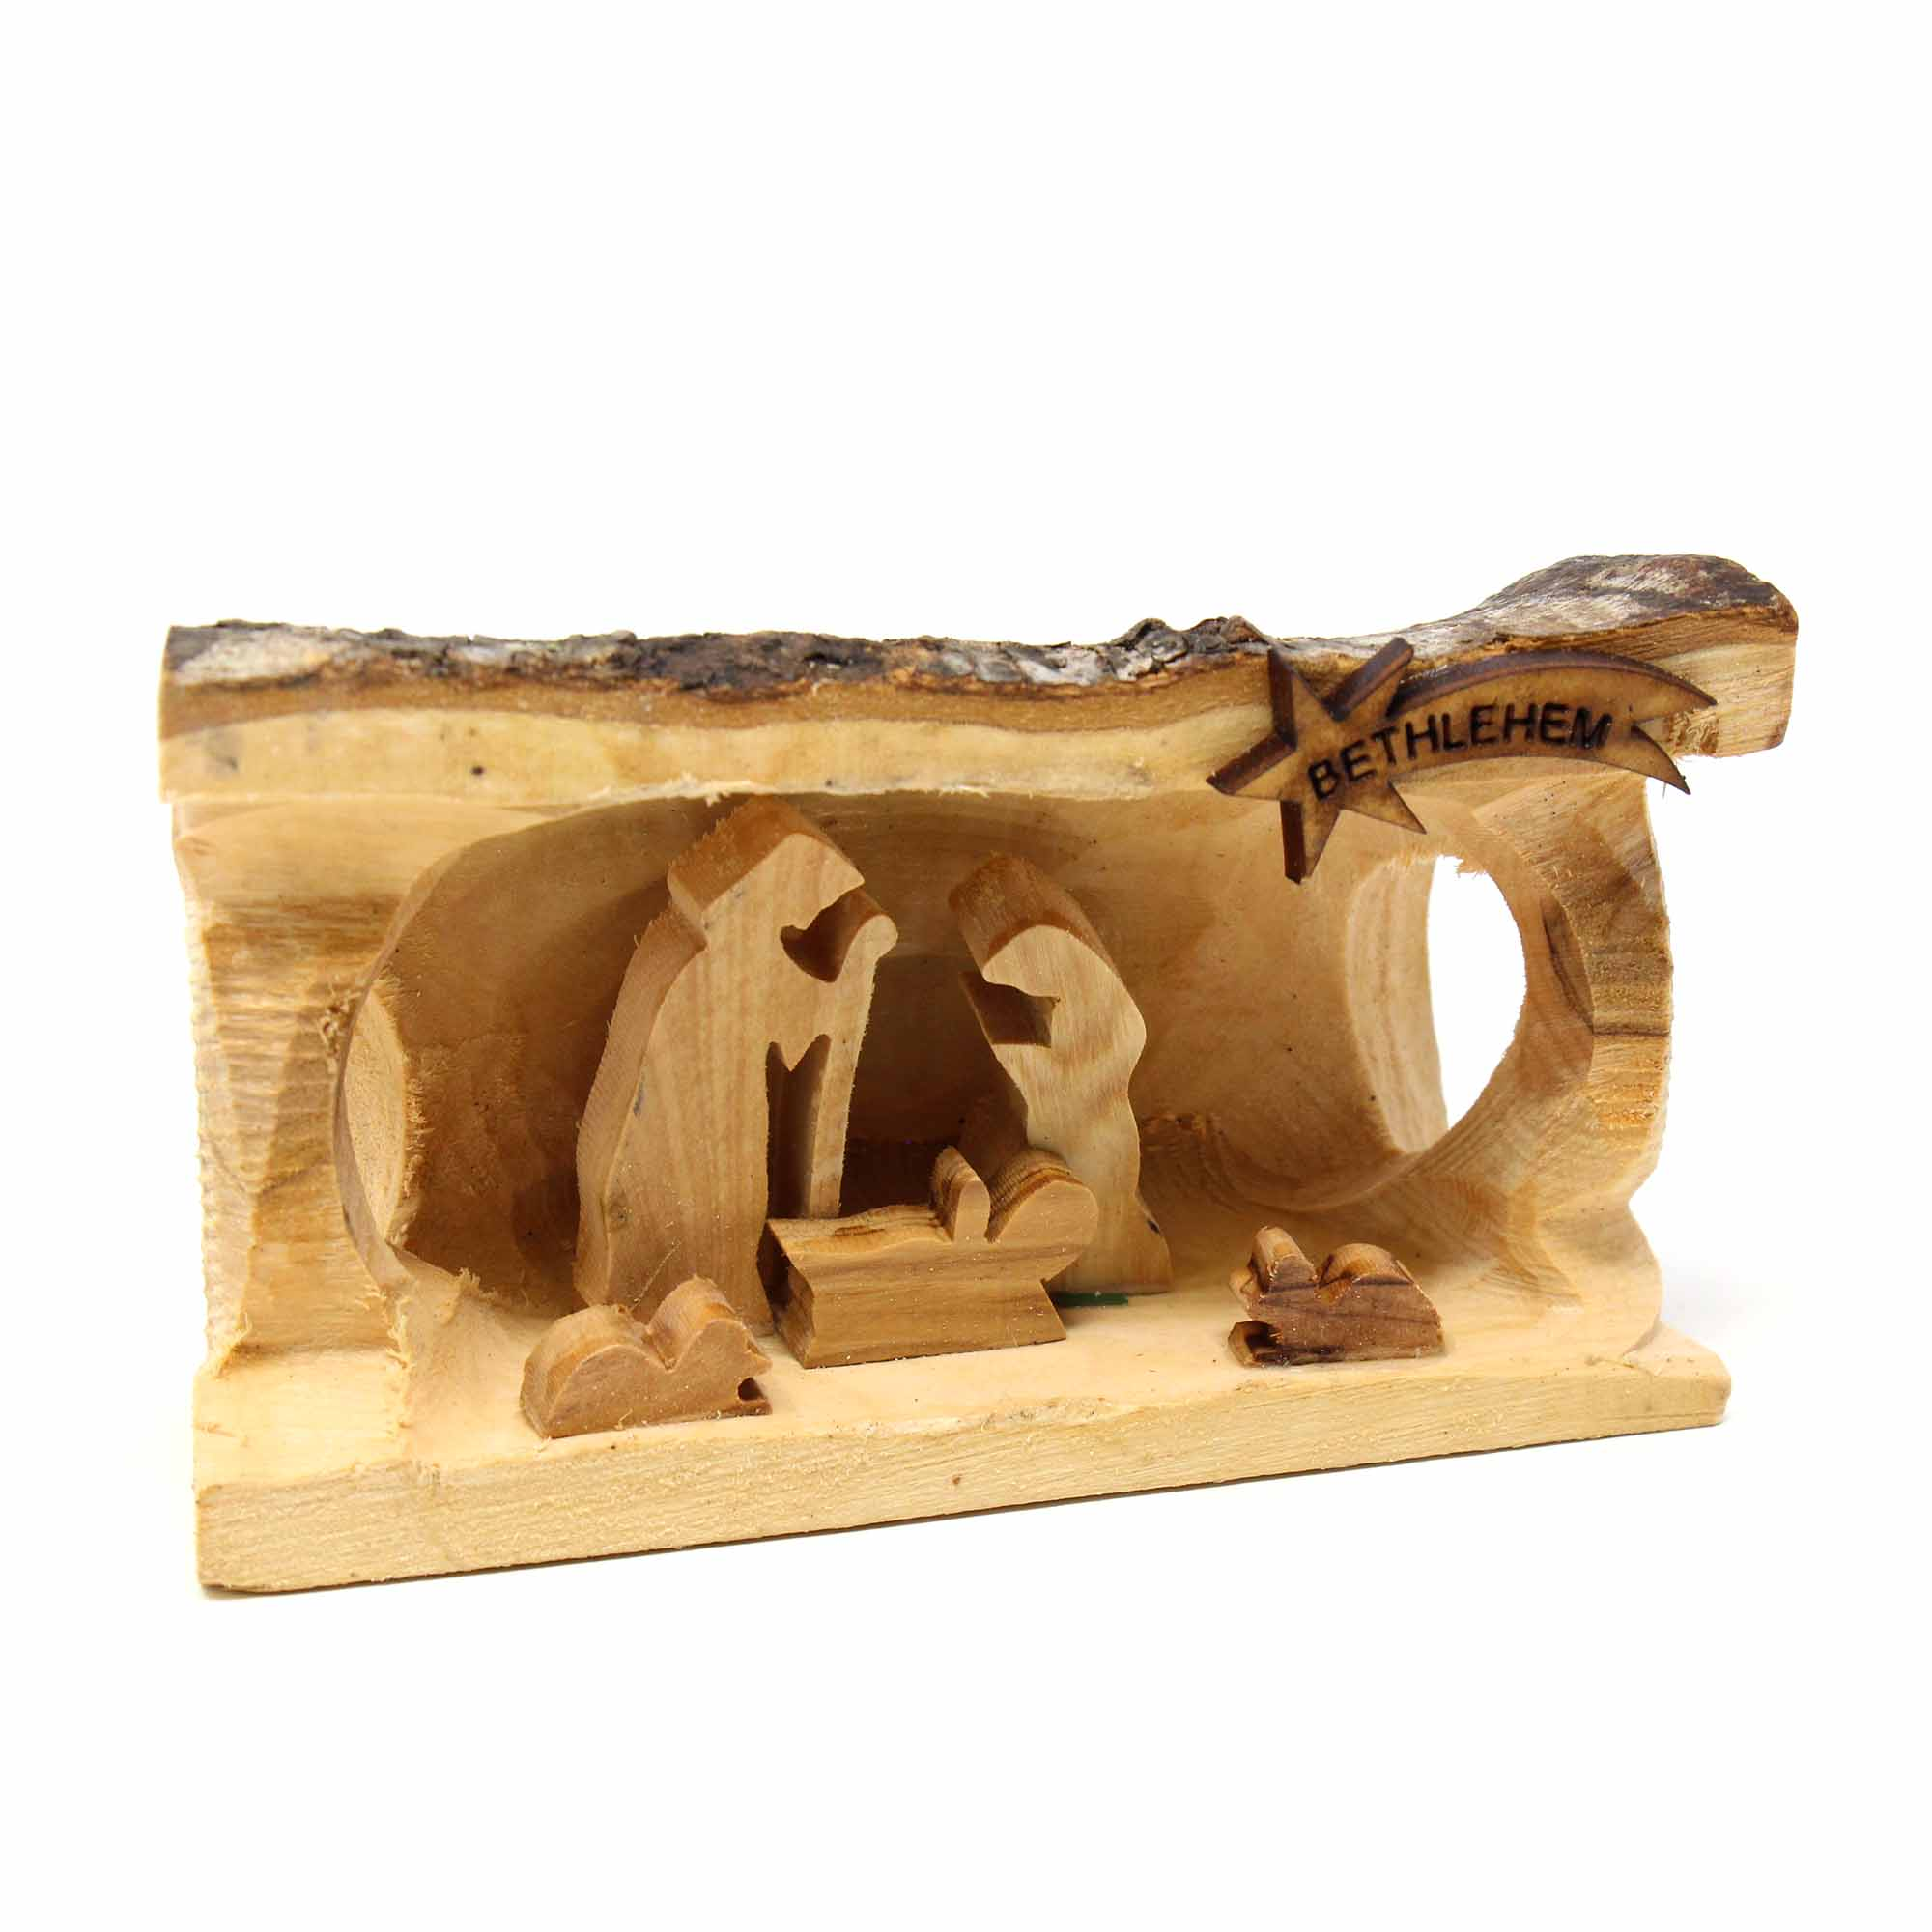 Olive Wood Nativity Scene - Bethlehem Star